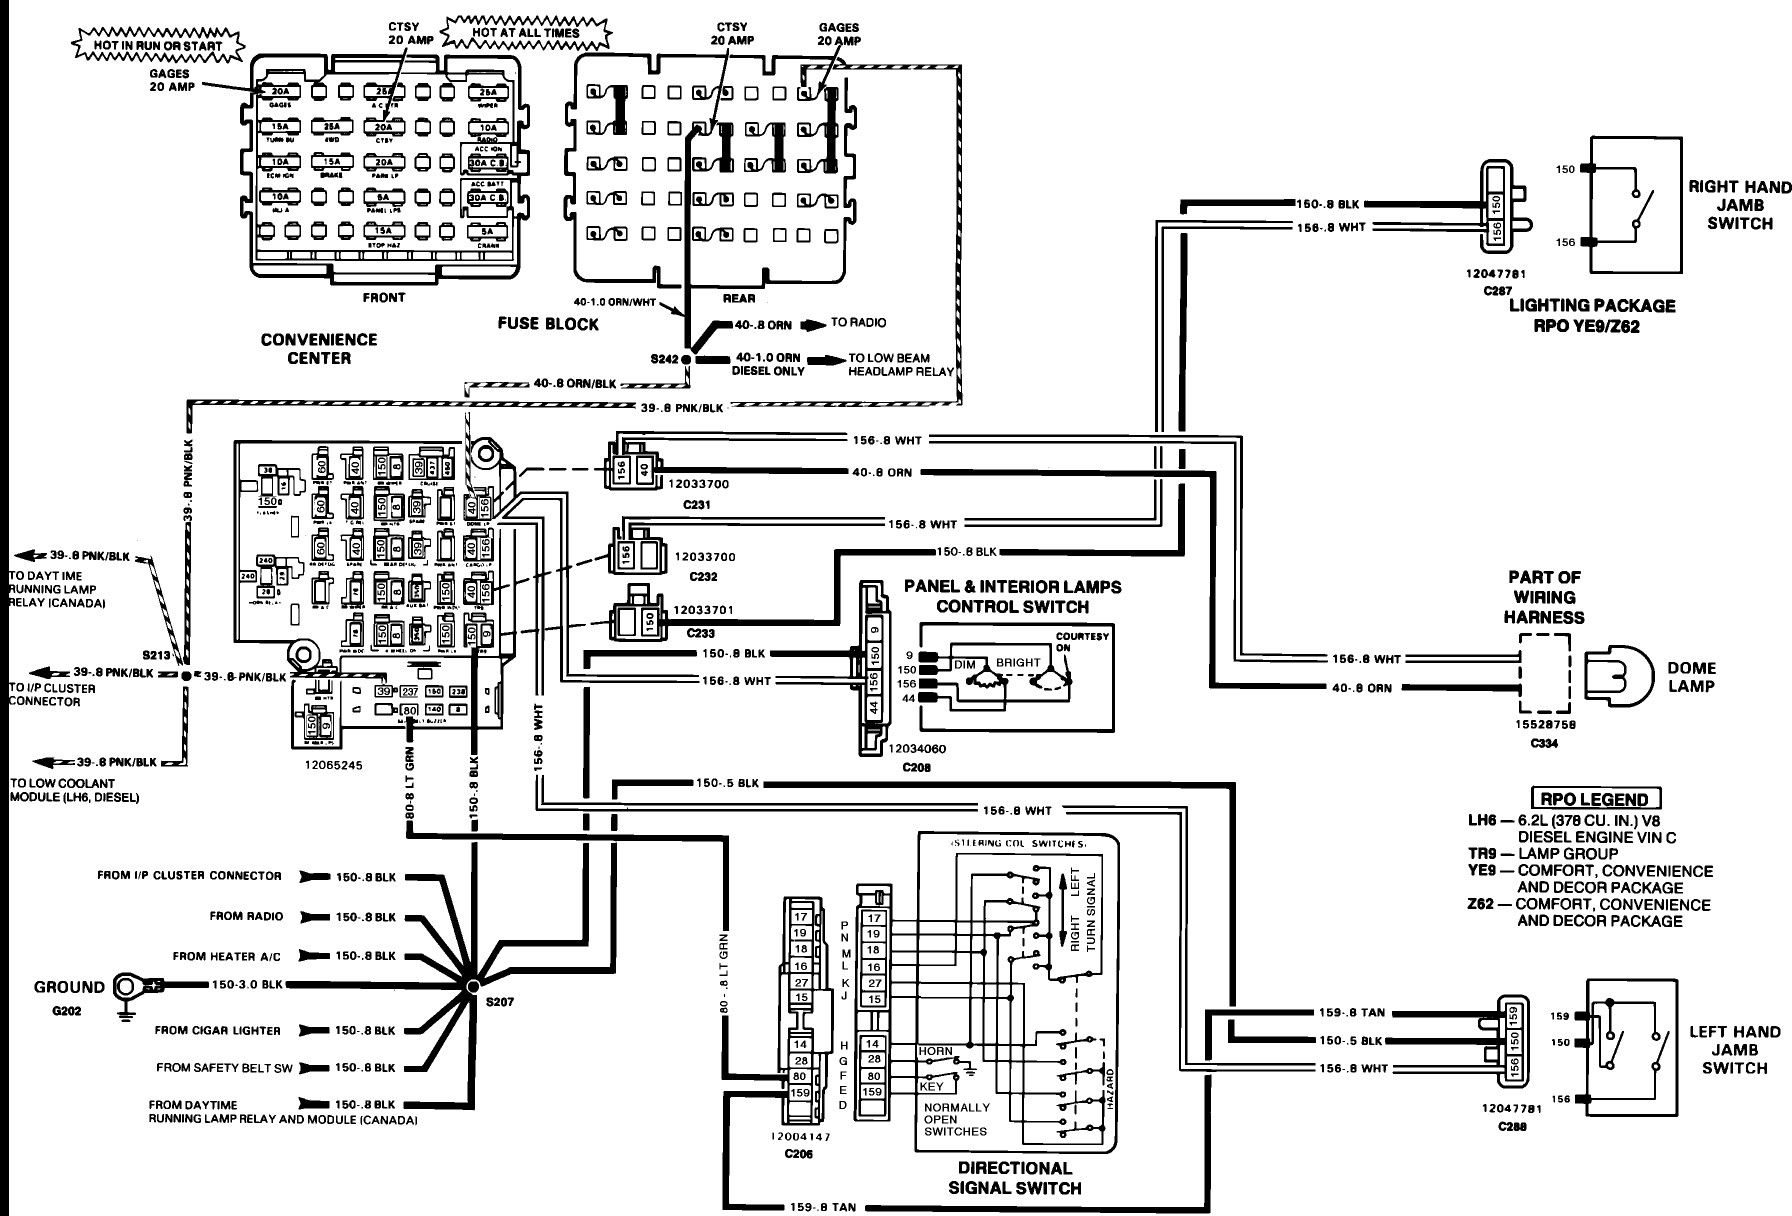 [DIAGRAM_3NM]  1993 Chevy Silverado Wiring Diagram Luxury 1993 Chevy Silverado Wiring  Diagram Westmagazine | Chevy trucks, Electrical wiring diagram, 1984 chevy  truck | 93 Chevy Truck Wiring Diagram |  | Pinterest